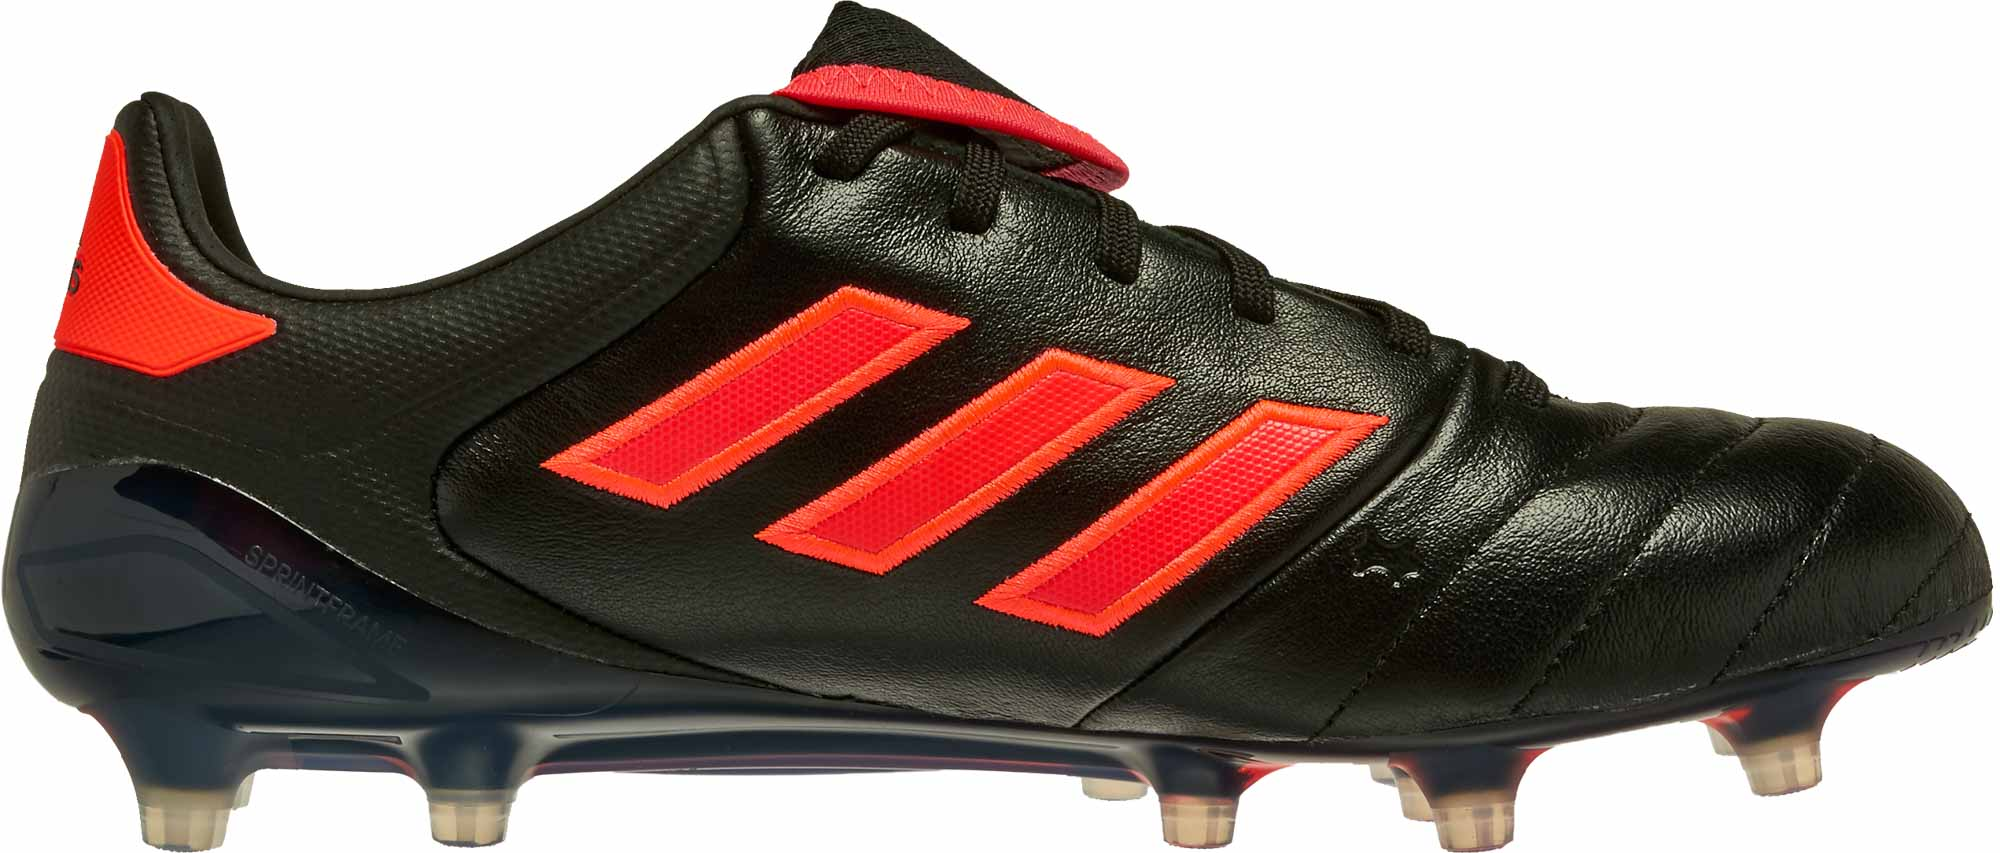 hot sales e3cde 2c00f ... san francisco d1b9e c78f9 adidas Copa 17.1 FG – Core BlackSolar Red ...